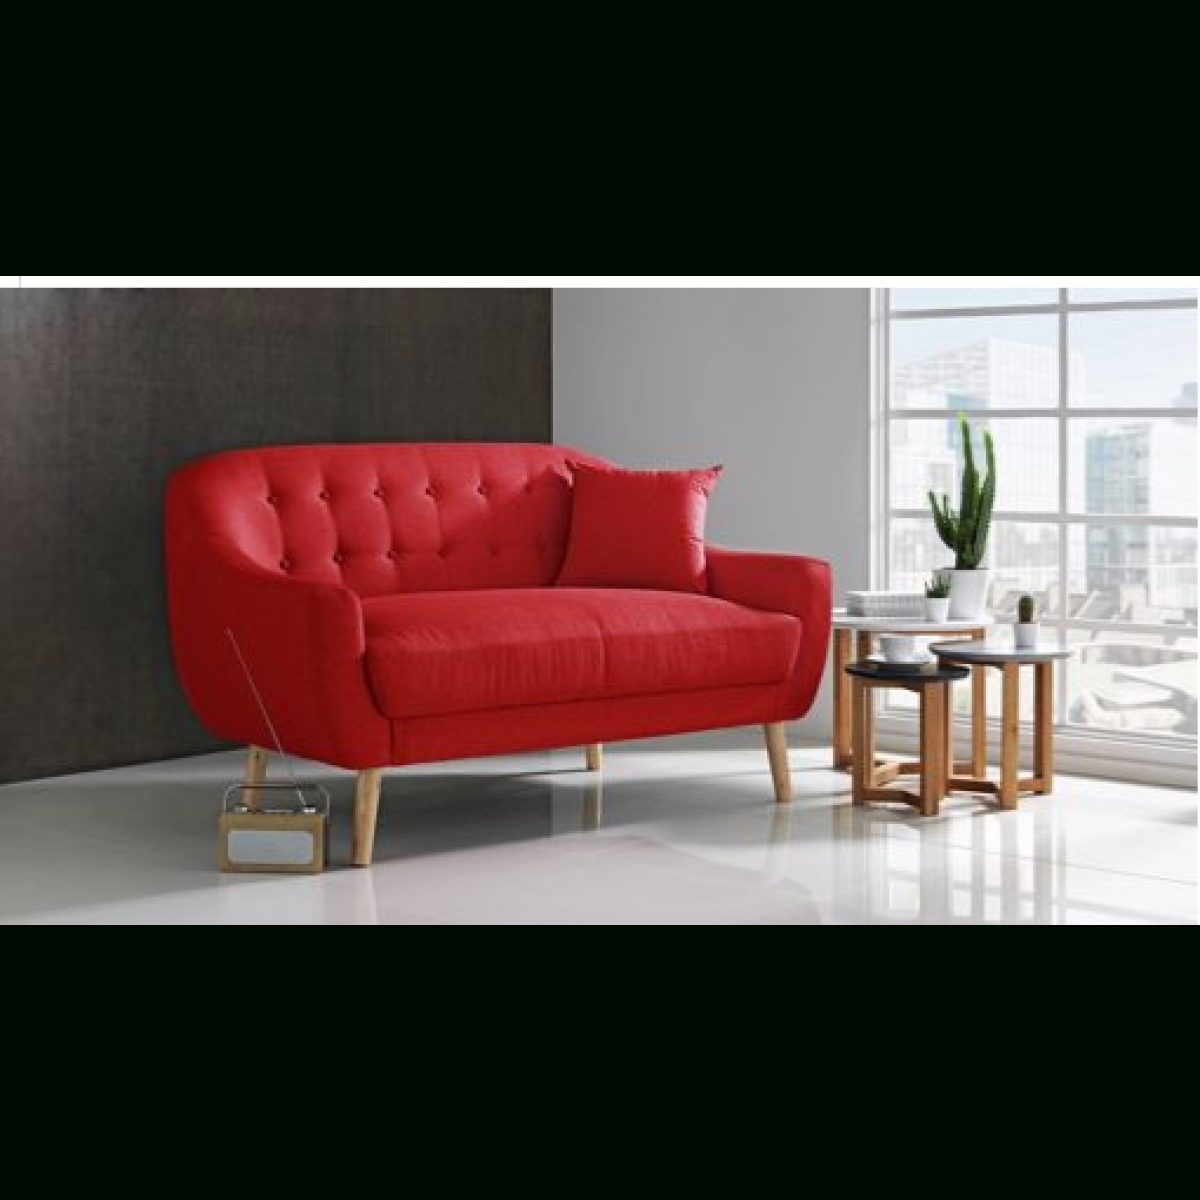 Fashionable Hygena Lexie Retro Compact Fabric 2 Seater Sofa – Poppy Red With Regard To Cheap Retro Sofas (View 8 of 15)